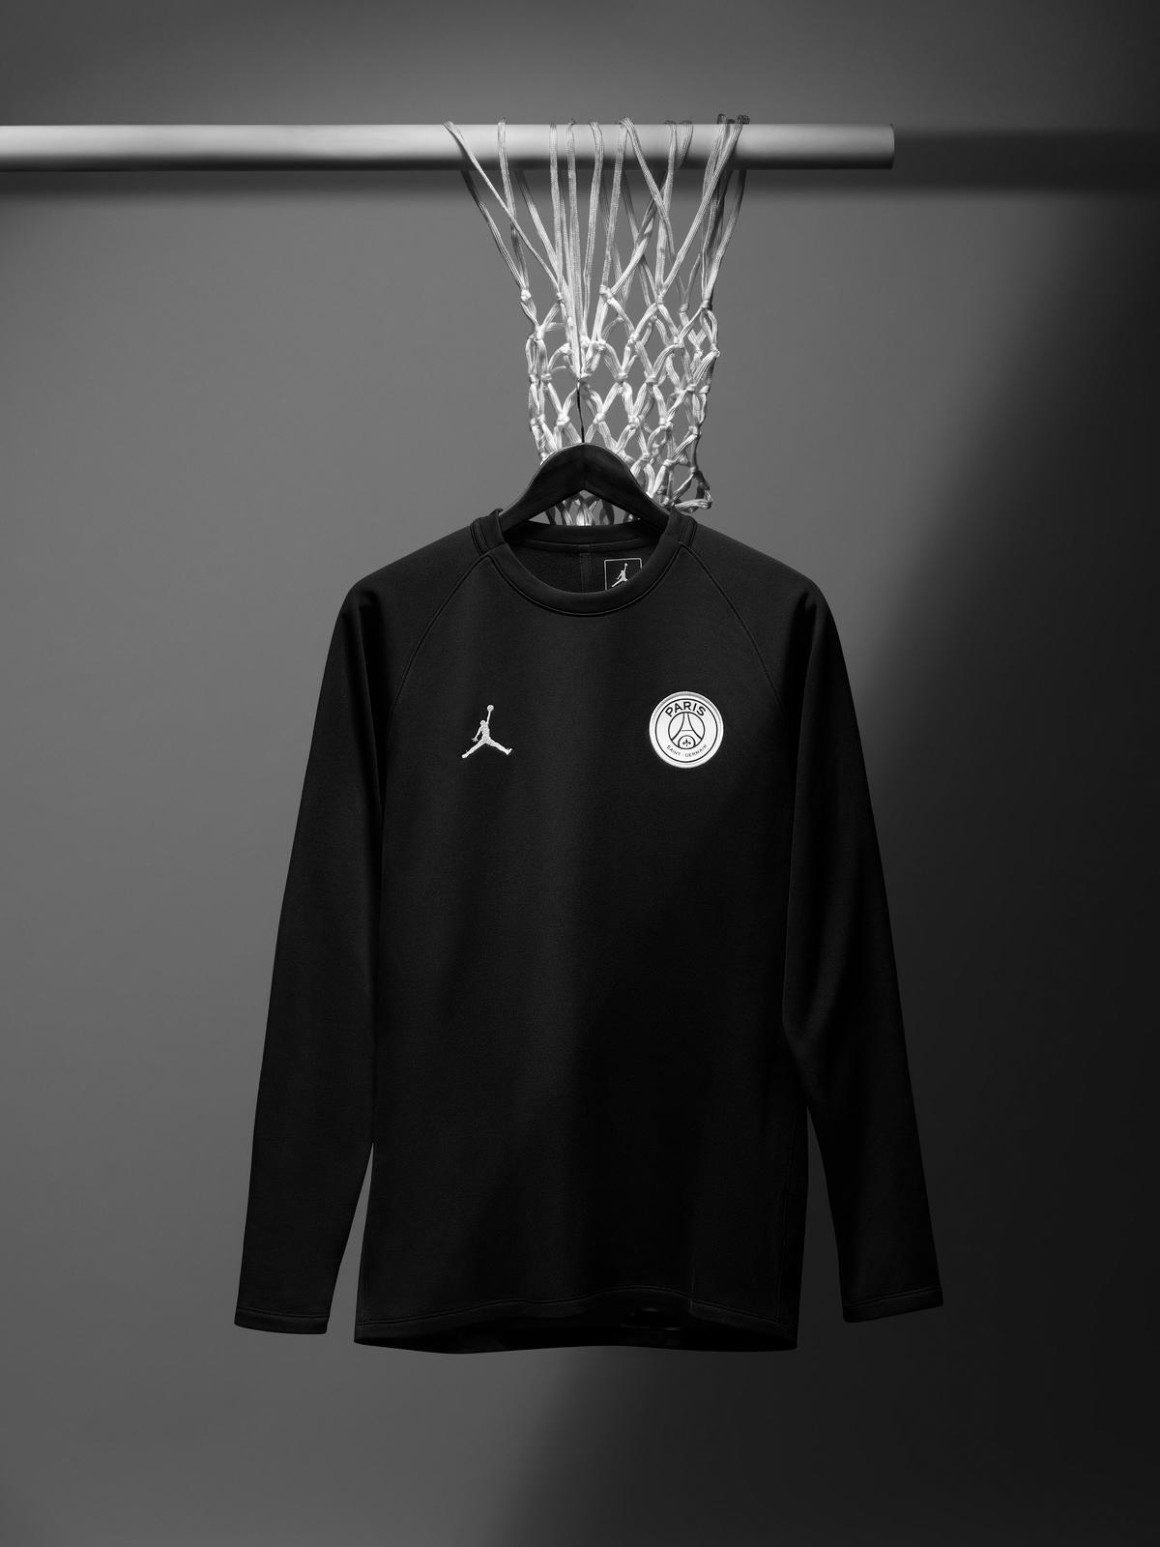 "cd8c694eb90 ""Jordan Brand and Paris Saint-Germain share a distinct position in sport  and style, so to partner with the club is a natural fit."""